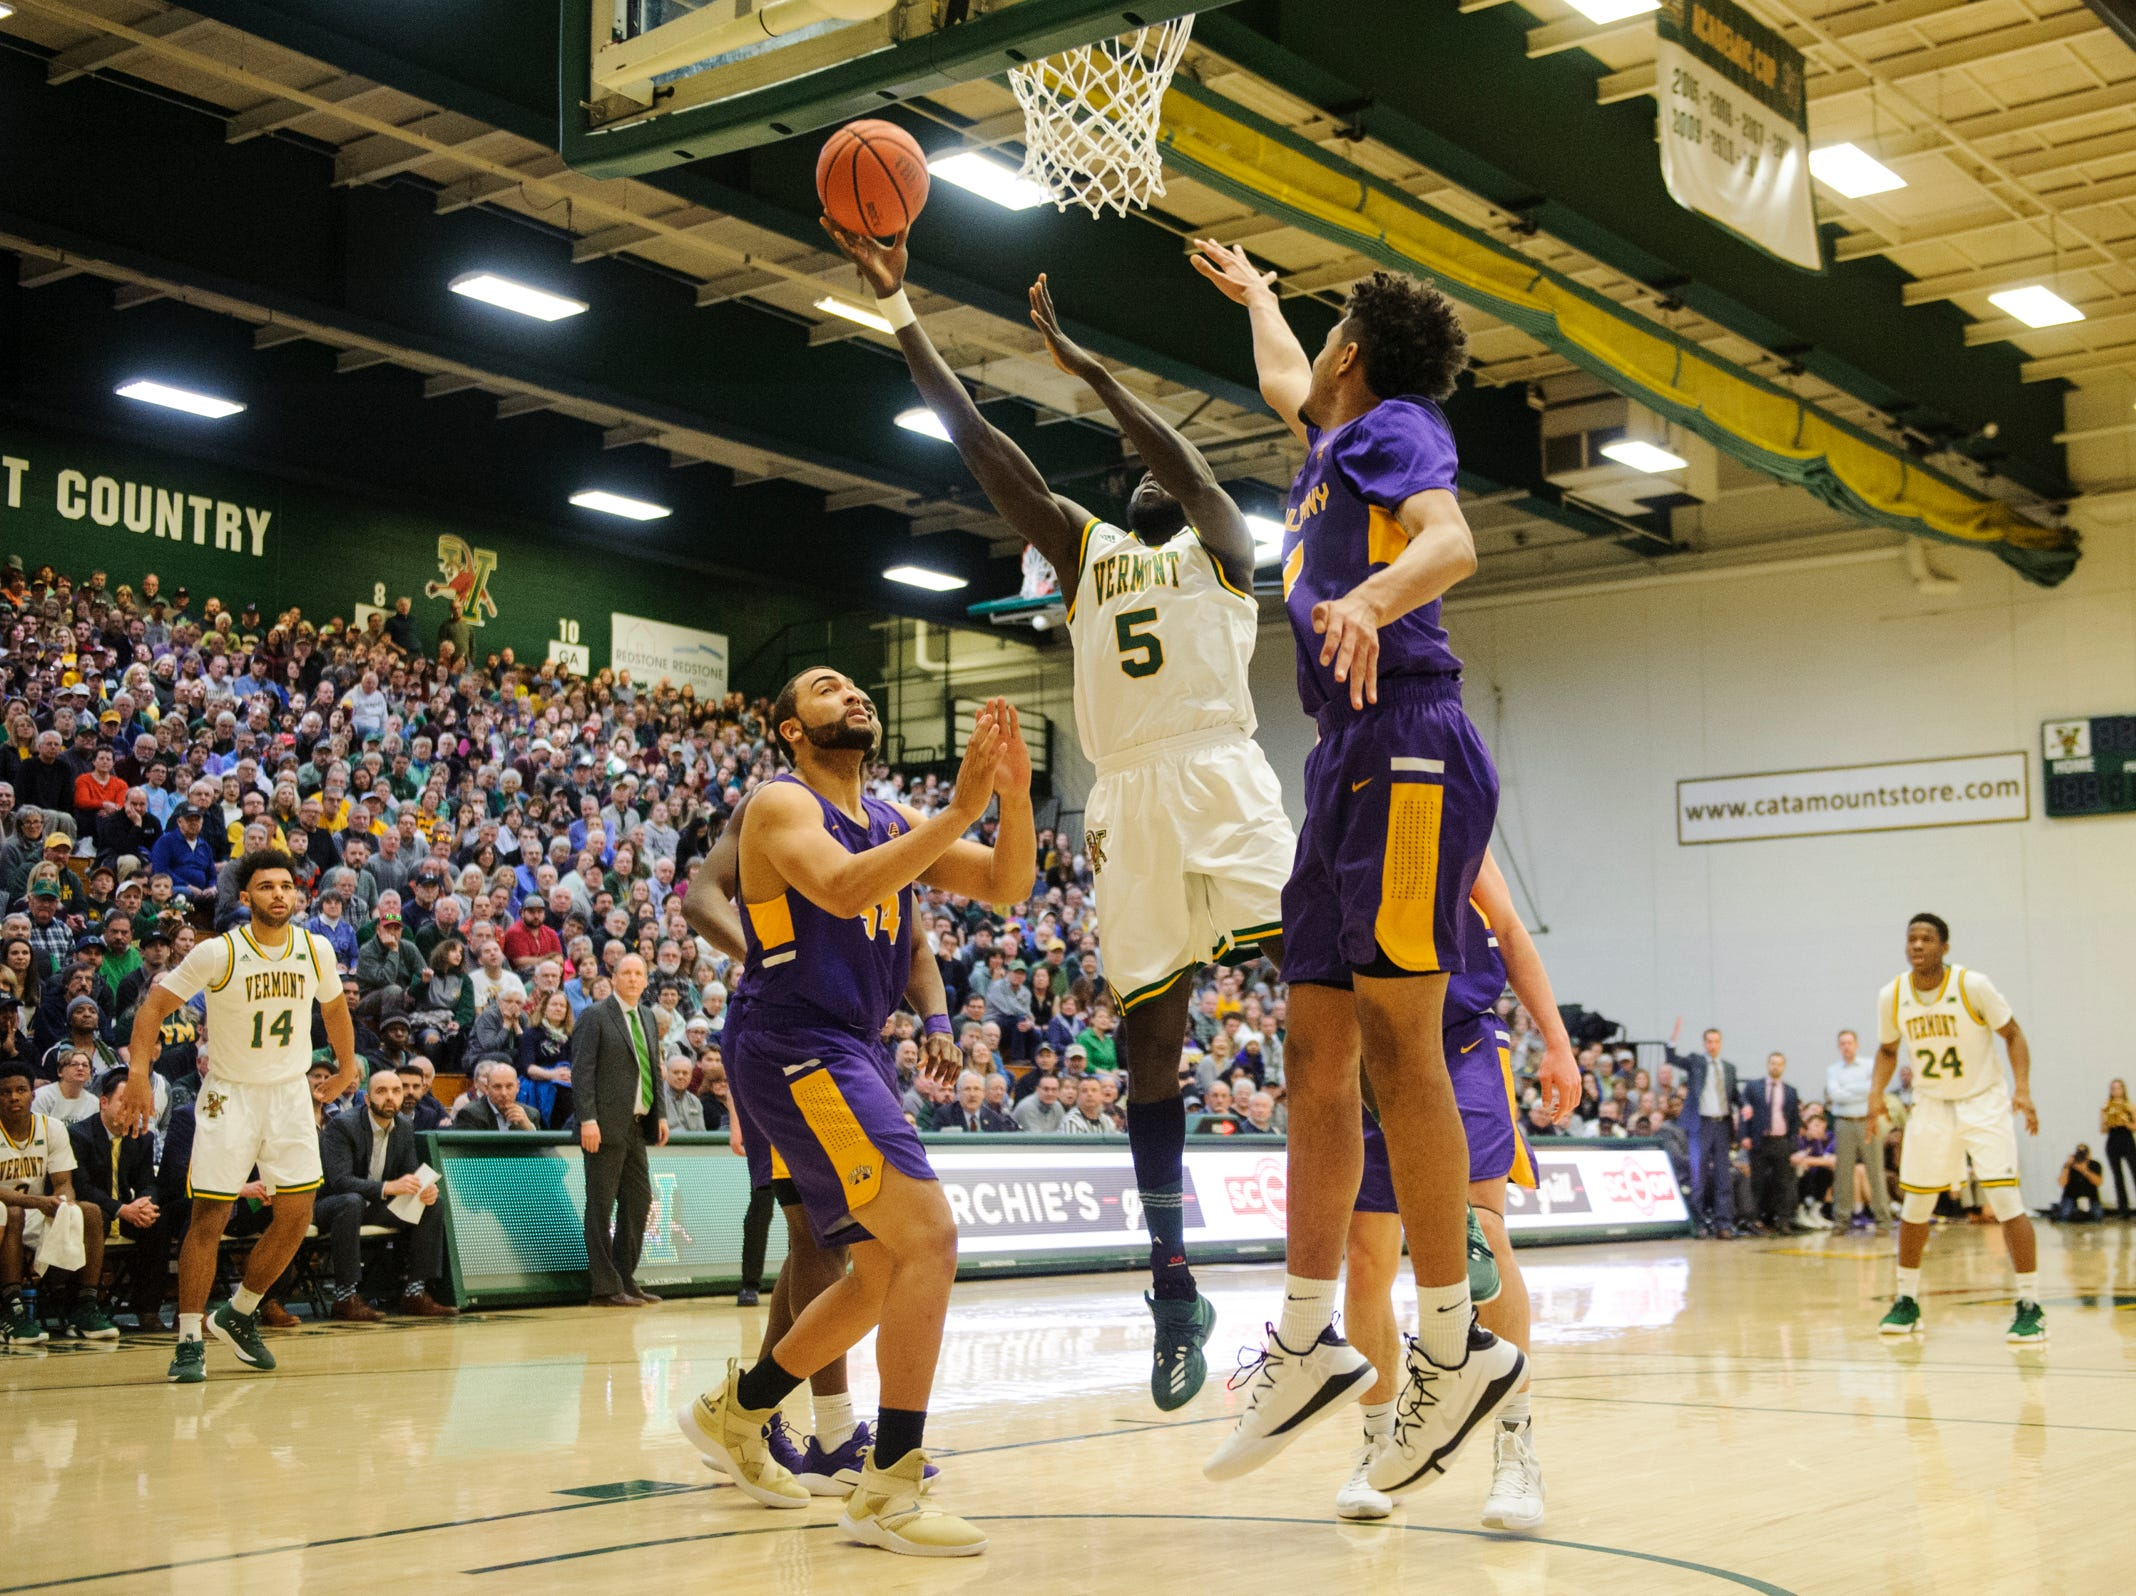 Vermont forward Samuel Dingba (5) leaps for a lay up during the men's basketball game between the Albany Great Danes and the Vermont Catamounts at Patrick Gym on Saturday February 9, 2019 in Burlington, Vermont.